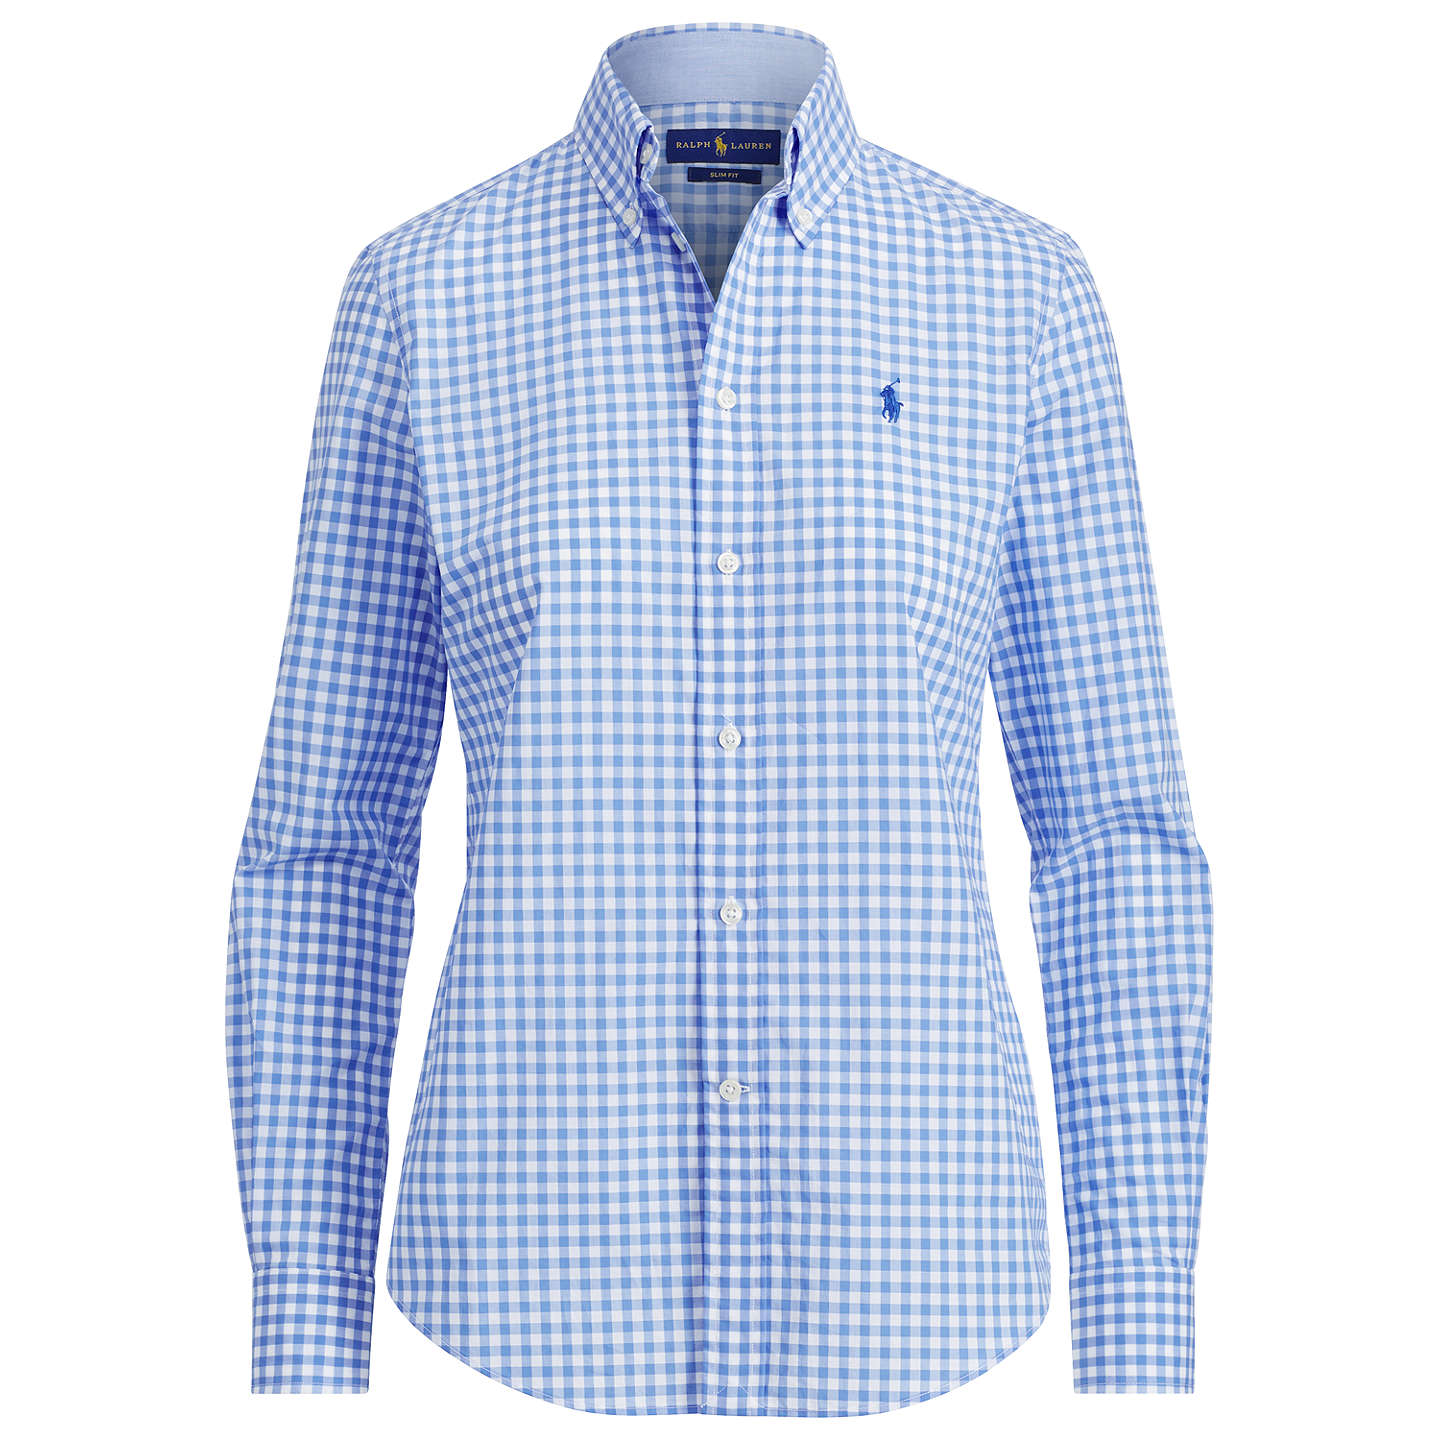 BuyPolo Ralph Lauren Kendall Slim Fit Gingham Shirt, Spring Blue/White, XS Online at johnlewis.com